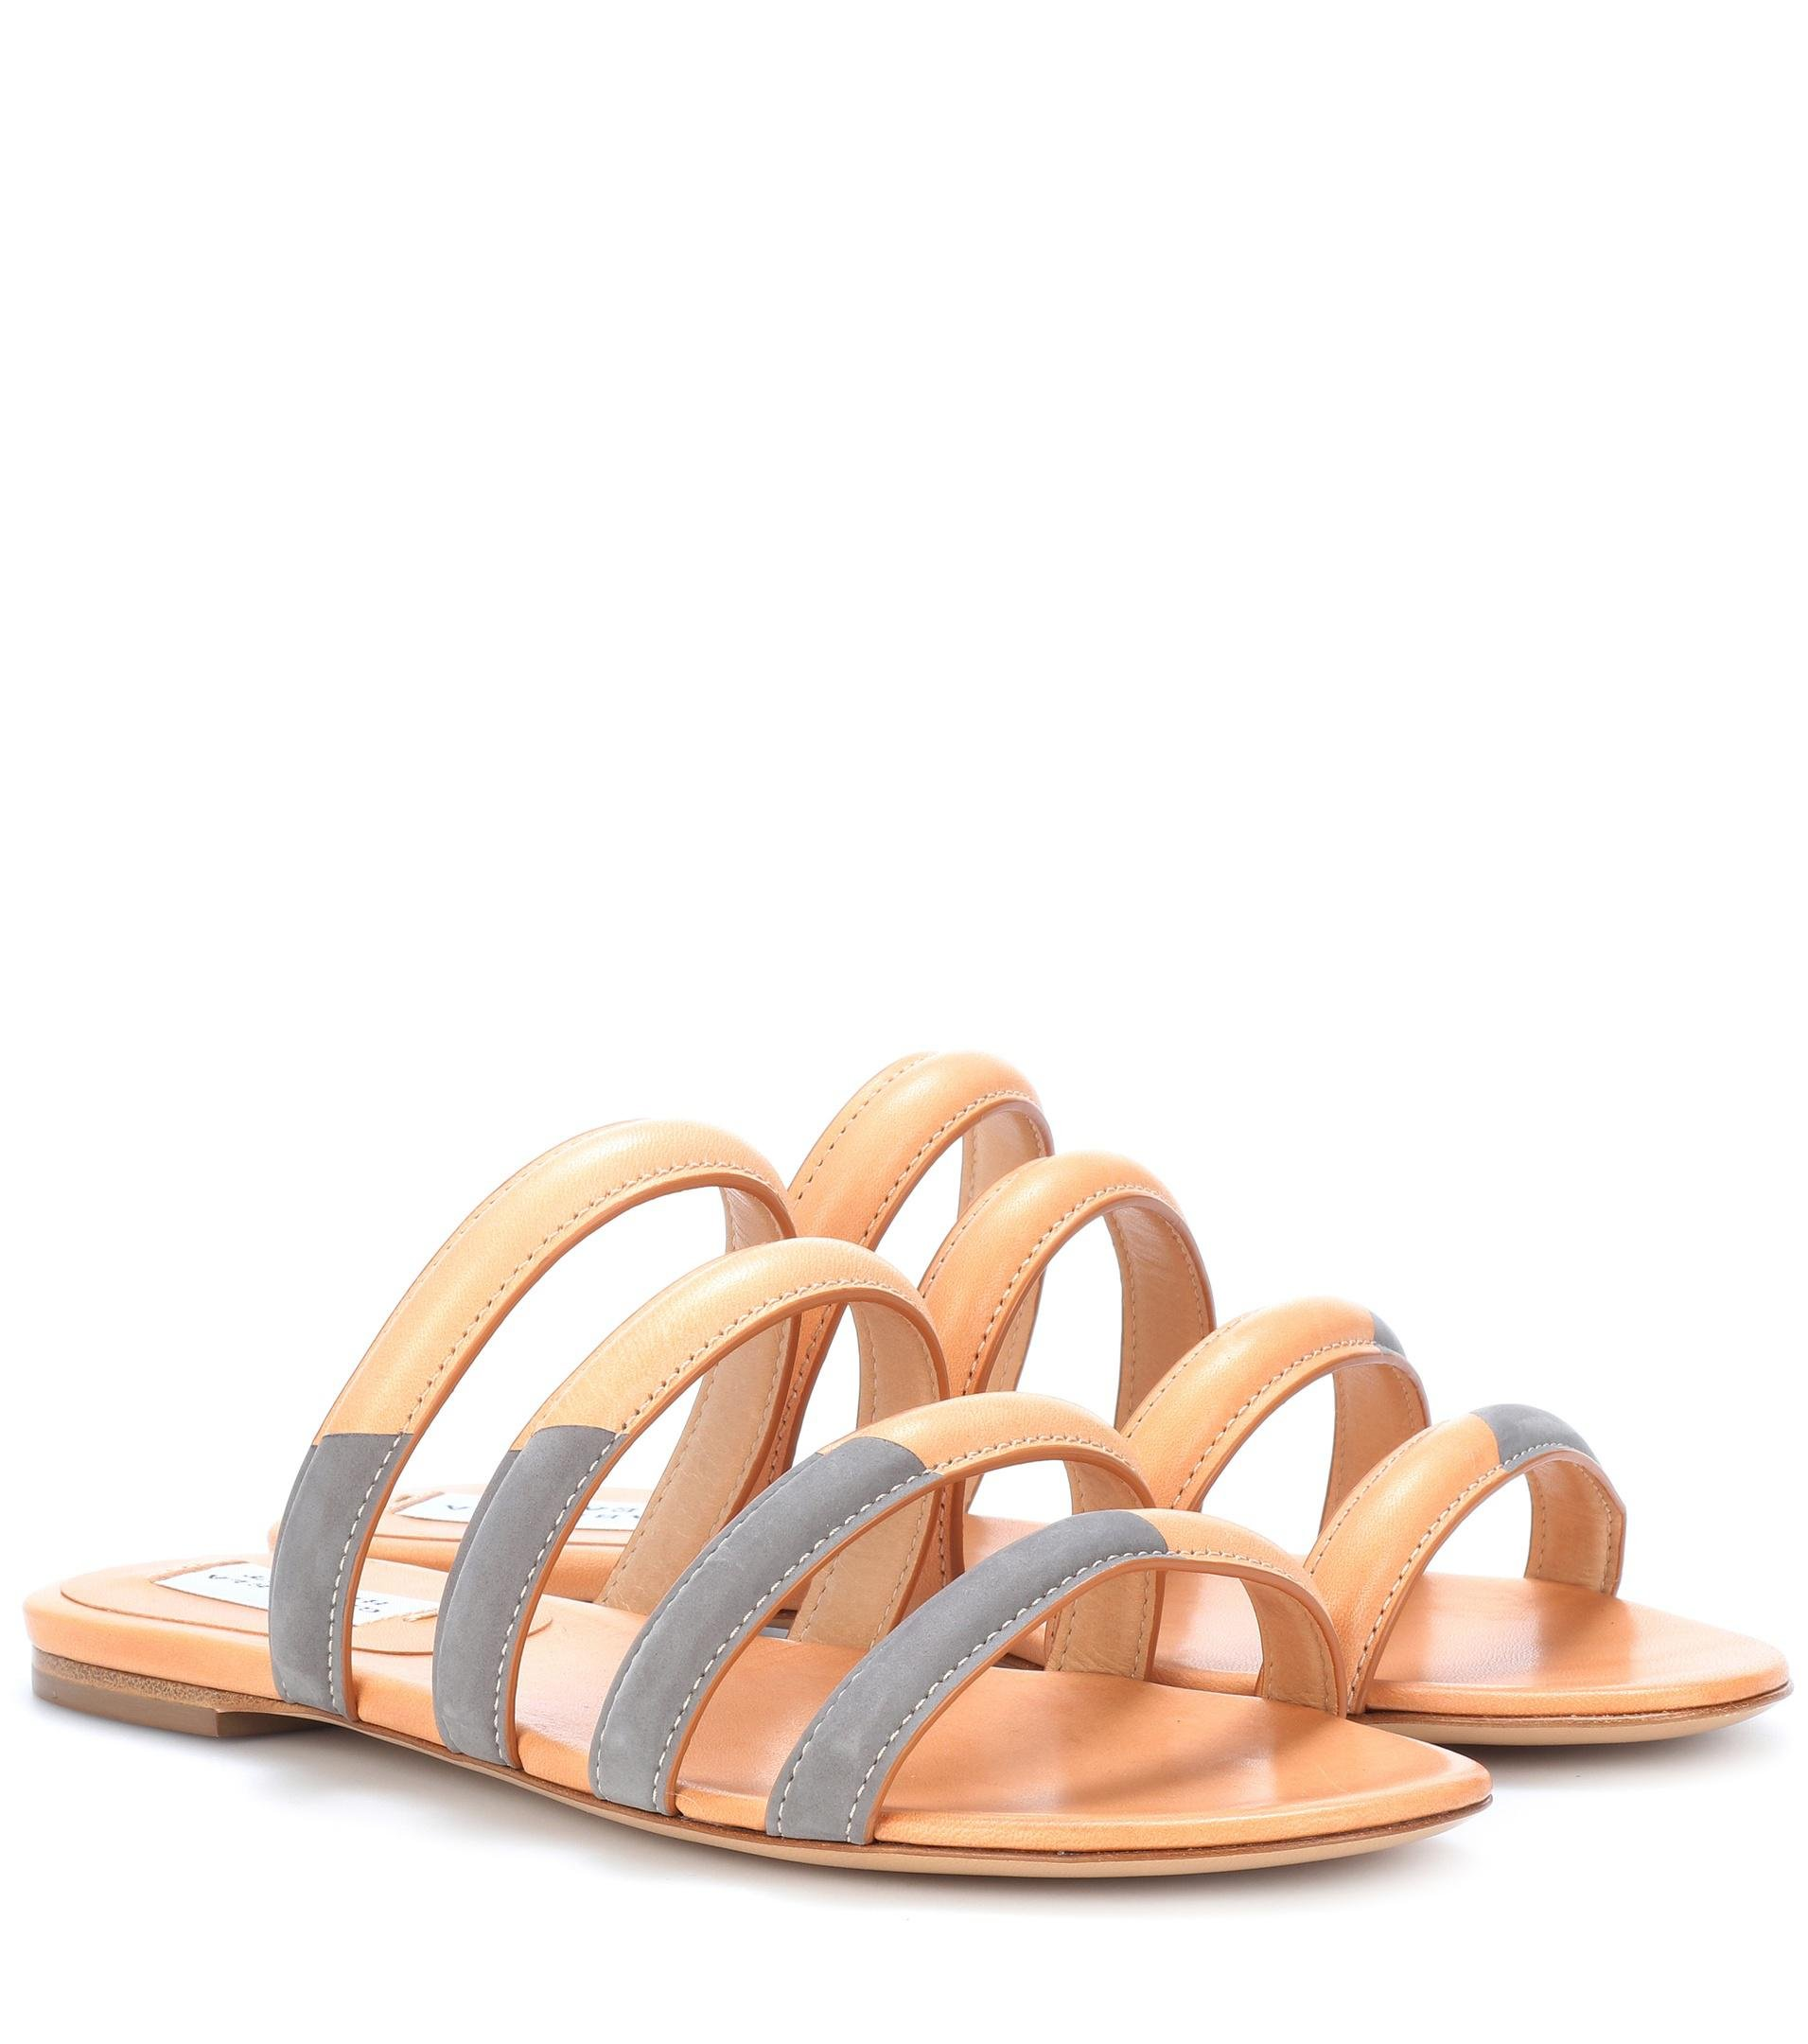 Gabriela Hearst Andersonn leather and suede sandals fast delivery cheap price cheap sale Cheapest qTYFNDdBv